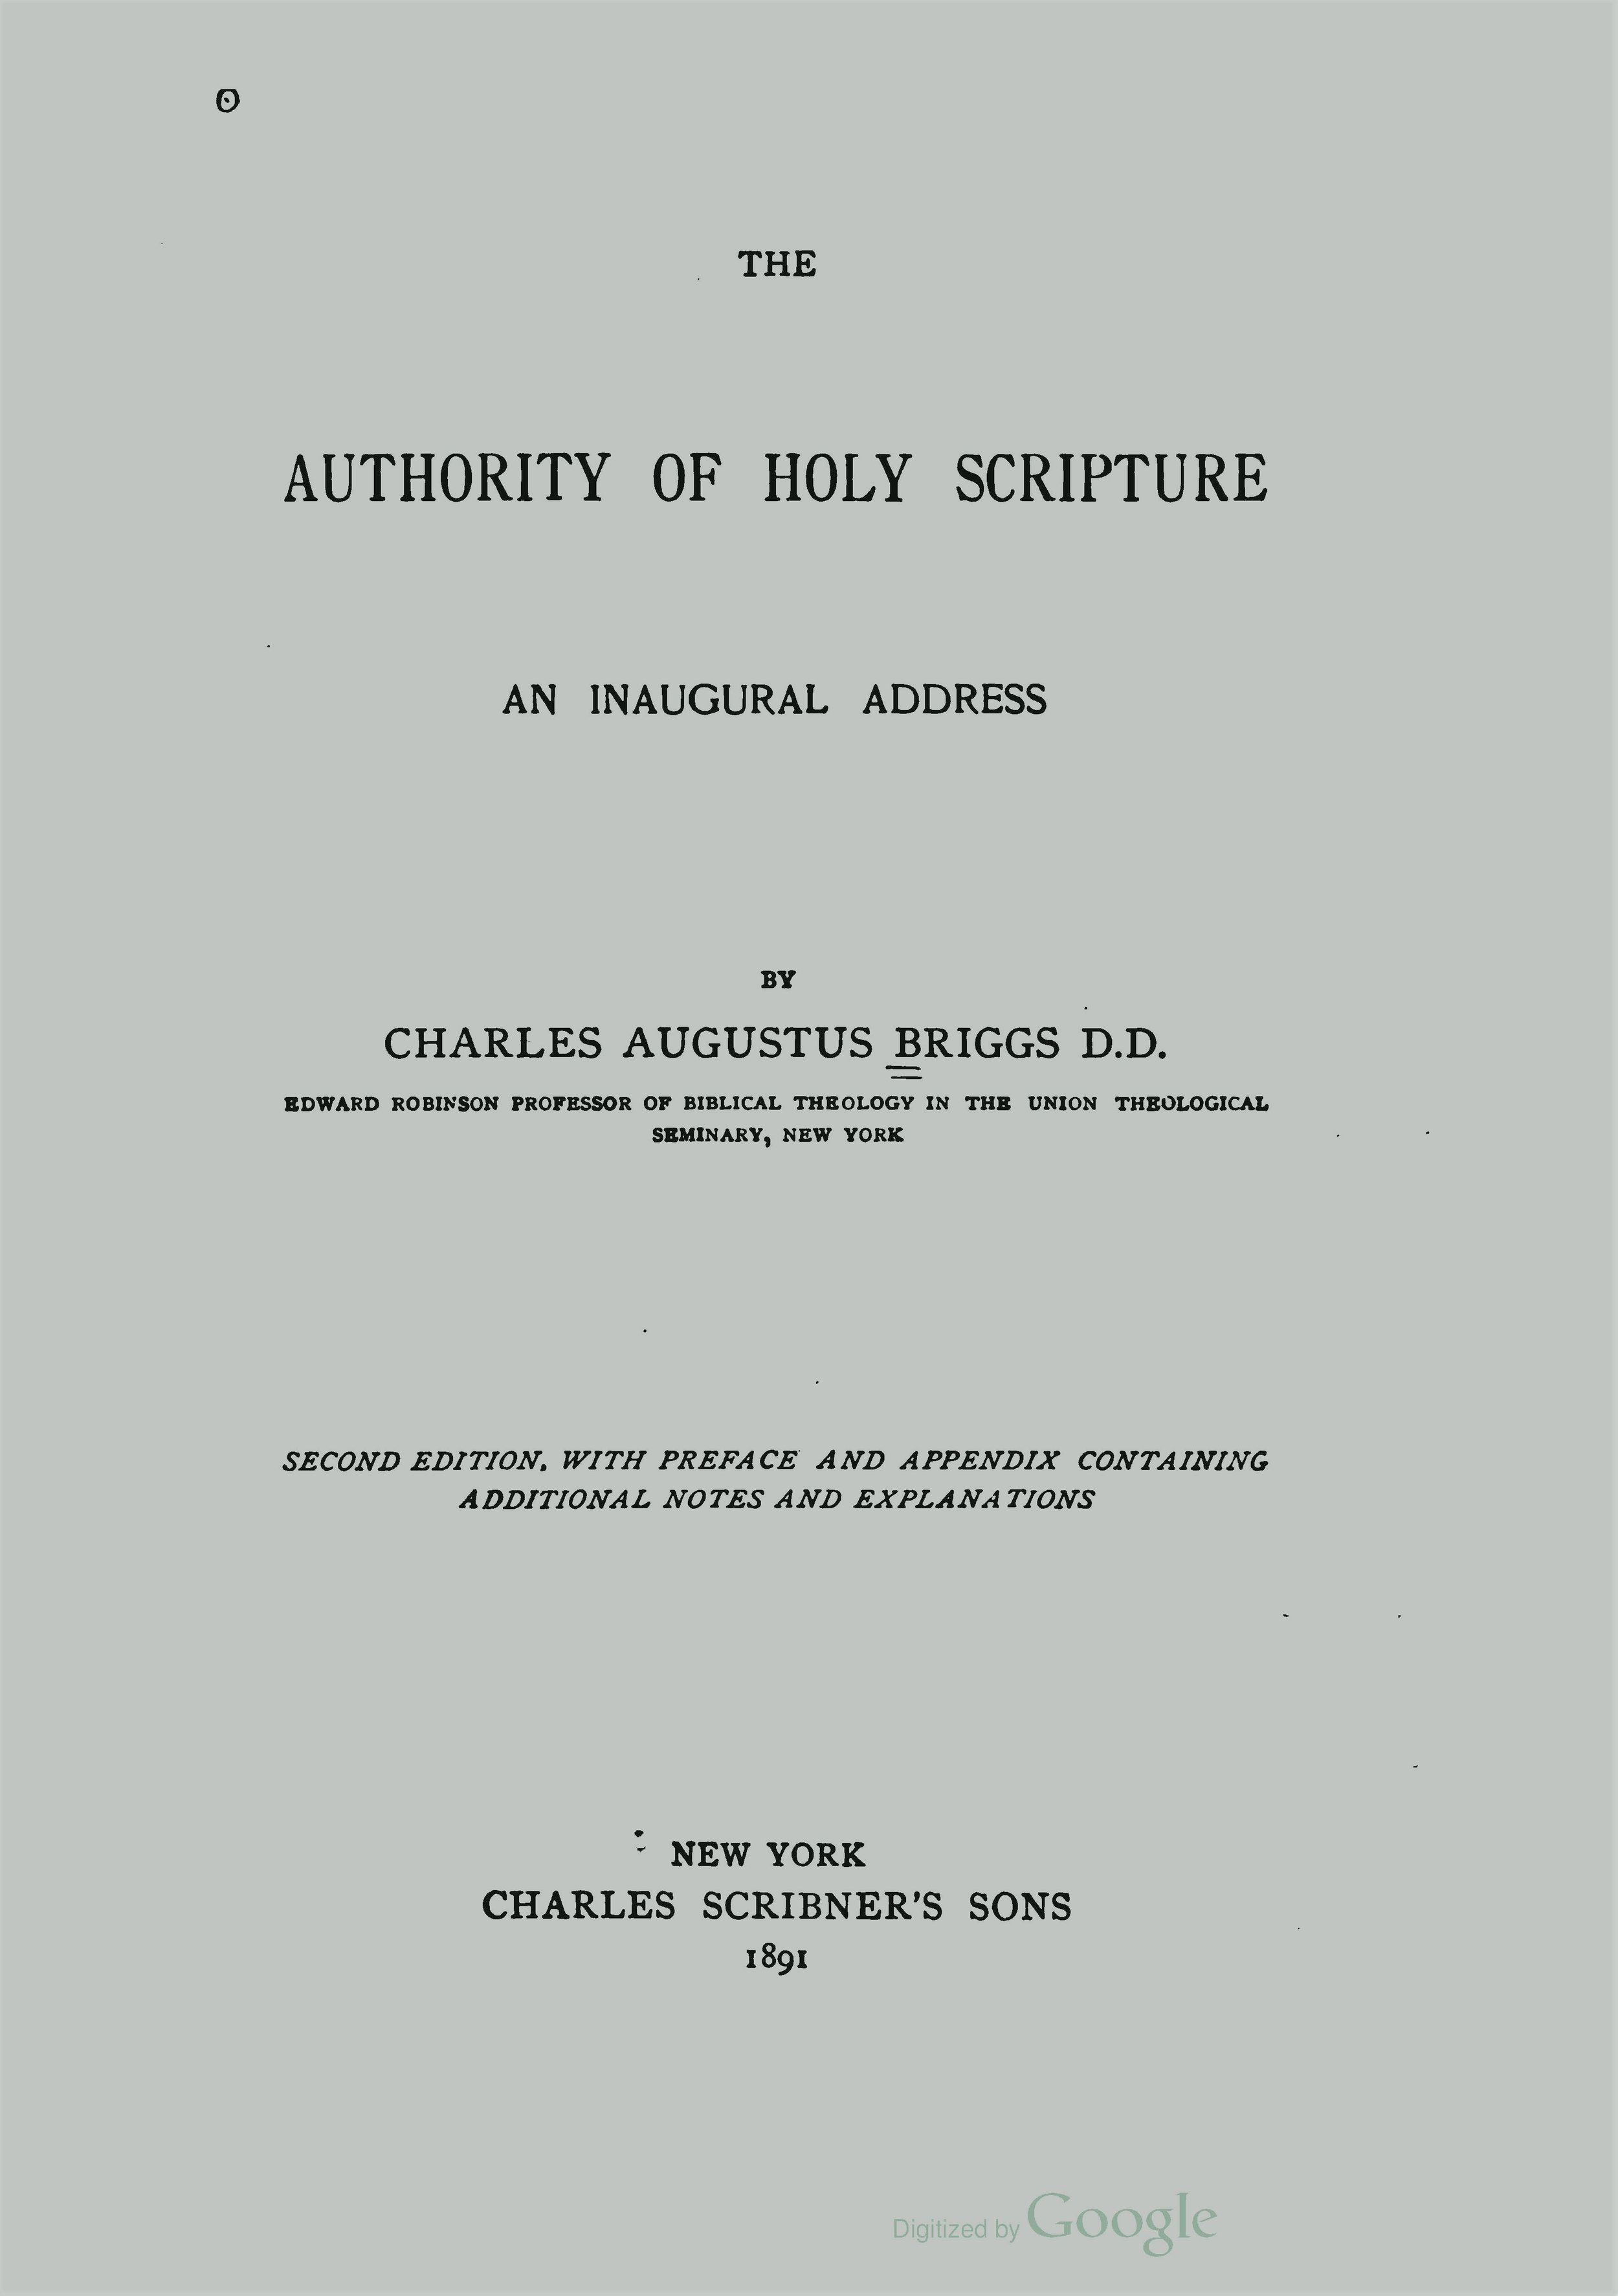 Briggs, Charles Augustus, The Authority of Holy Scripture An Inaugural Address Title Page.jpg